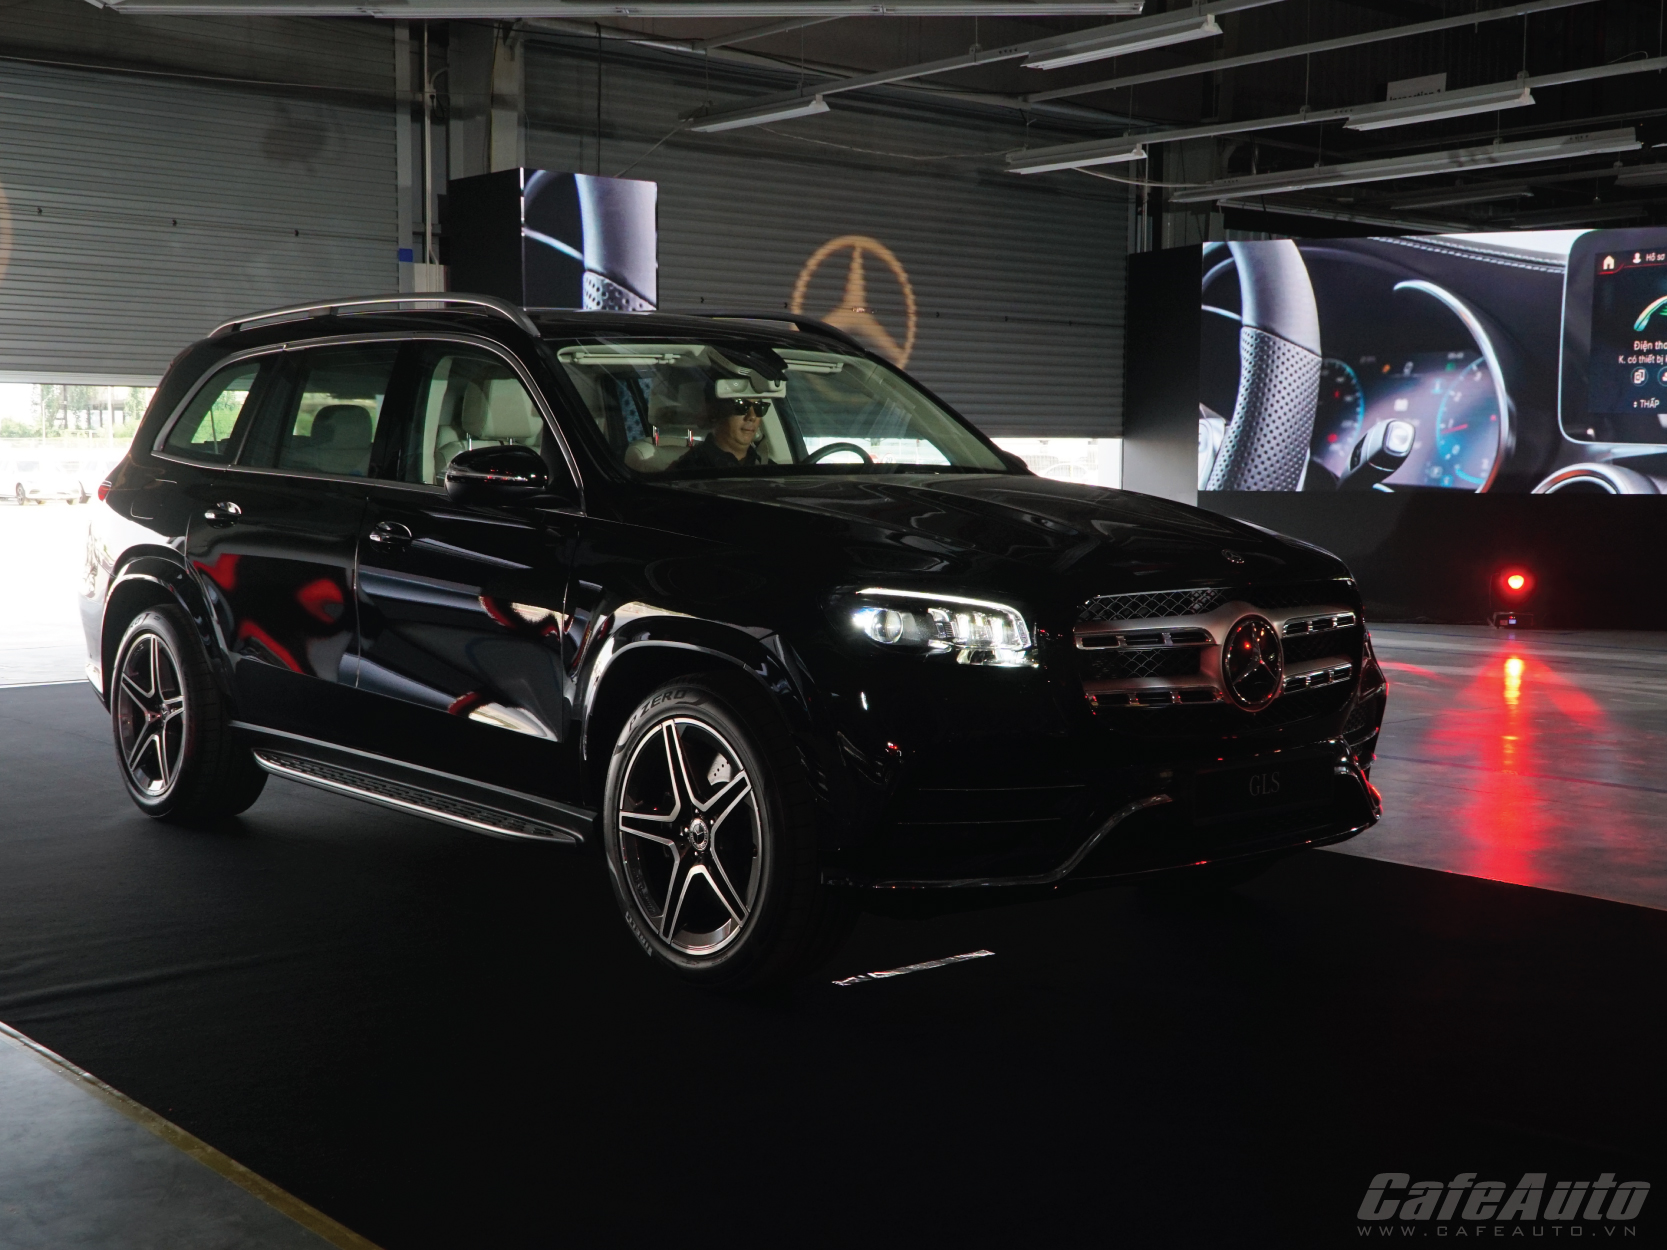 can-canh-gls-450-phien-ban-gam-cao-cua-s-class